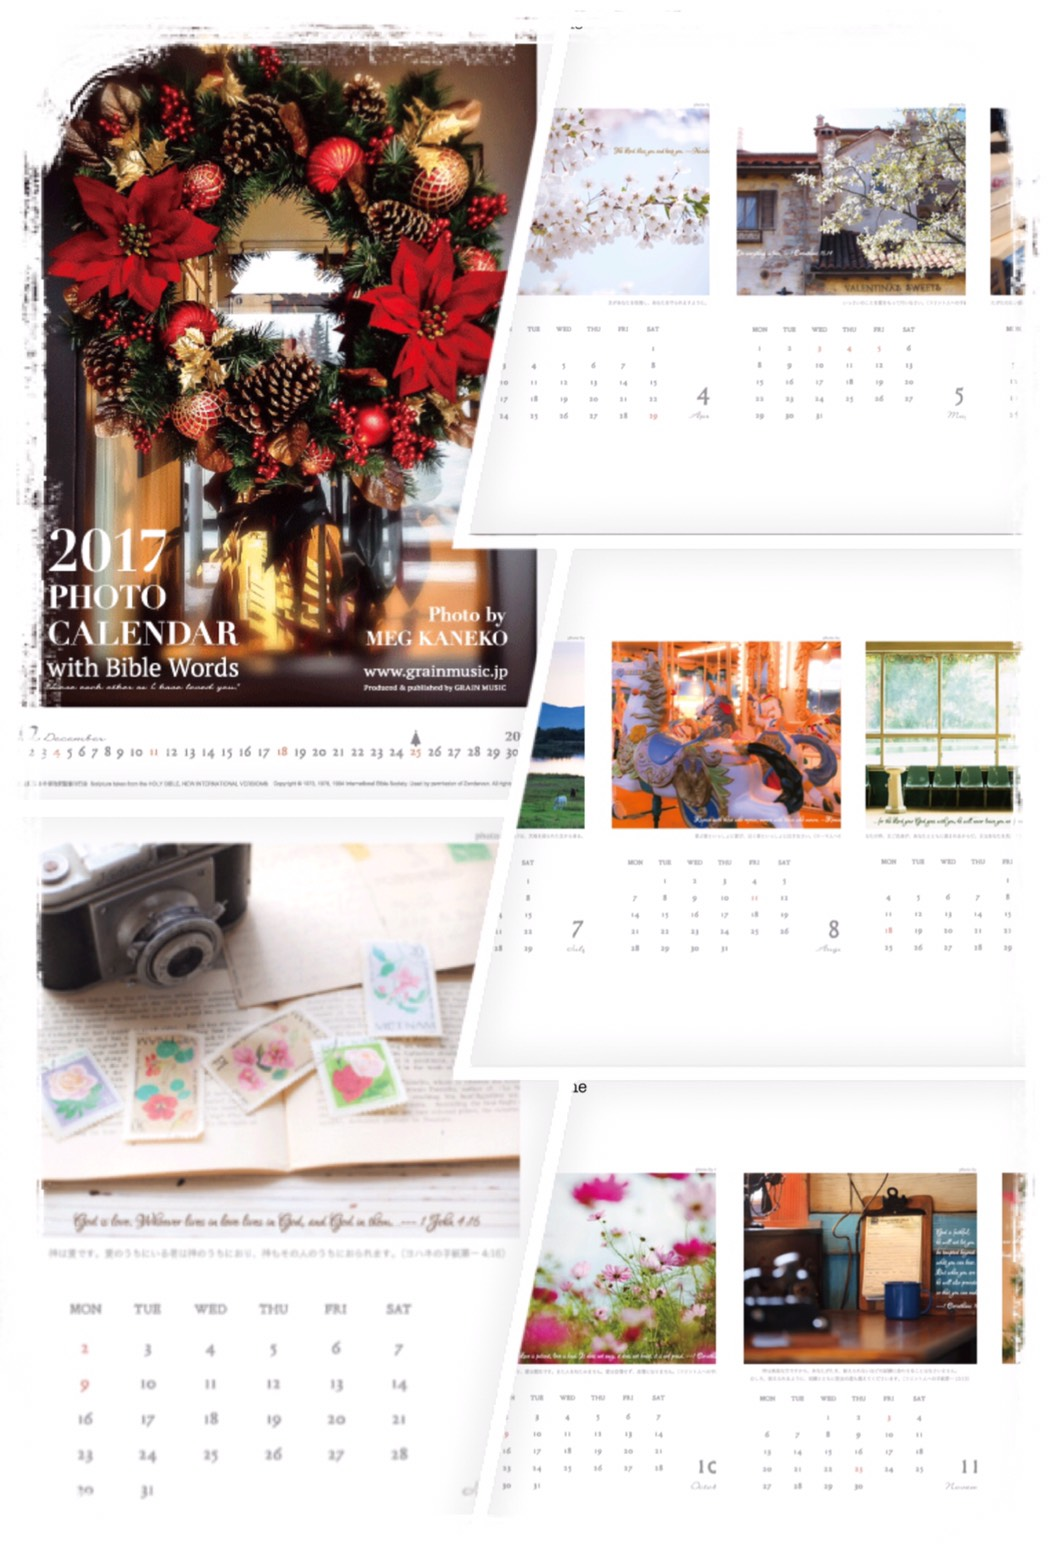 ♪「2017 PHOTO CALENDAR with Bible Words」発売中